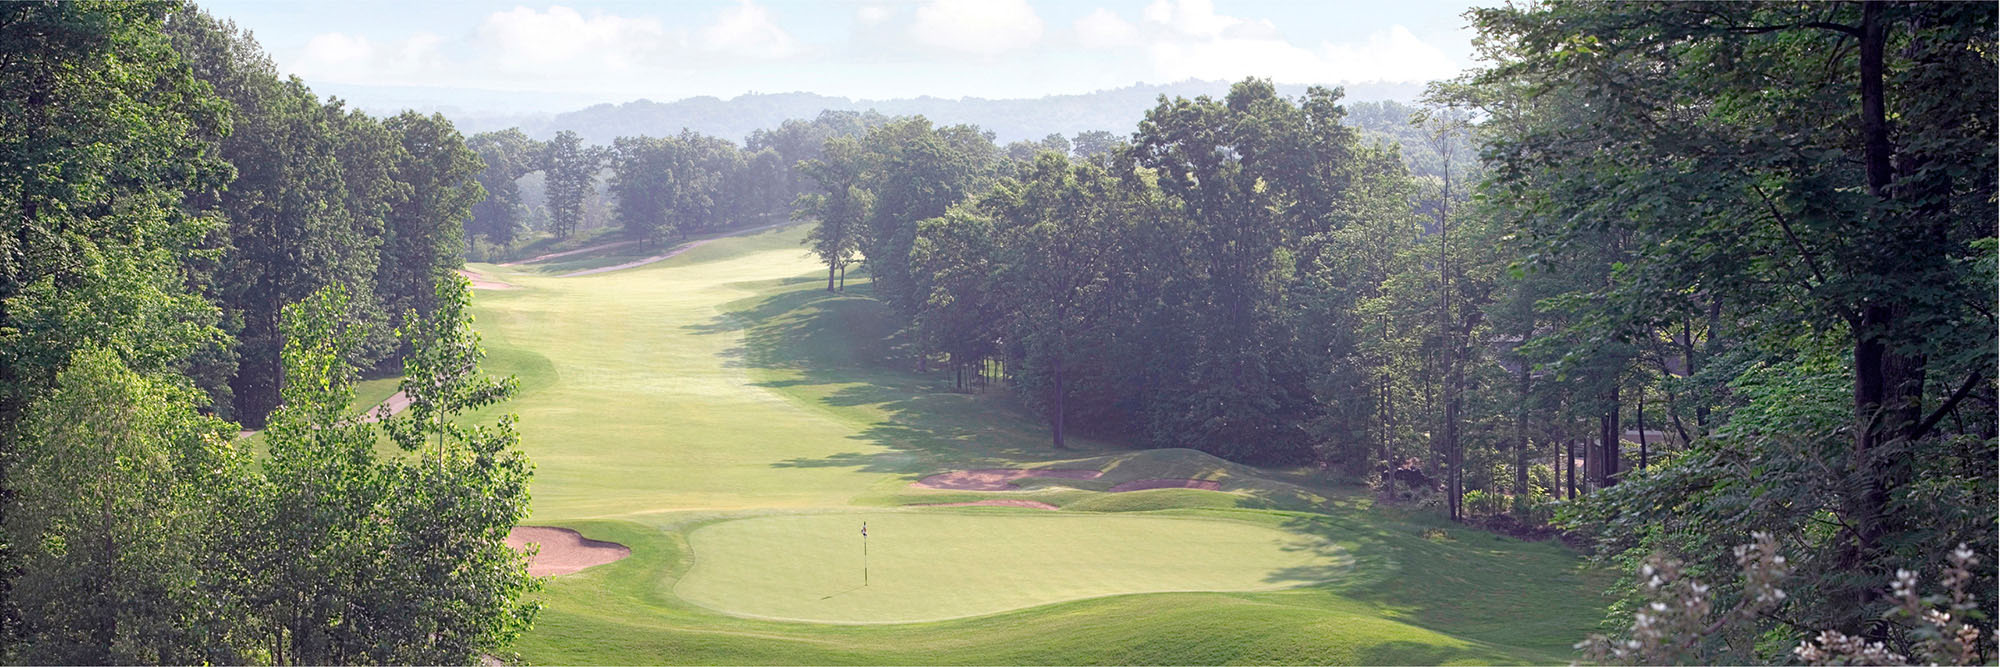 Golf Course Image - Thousand Oaks No. 12